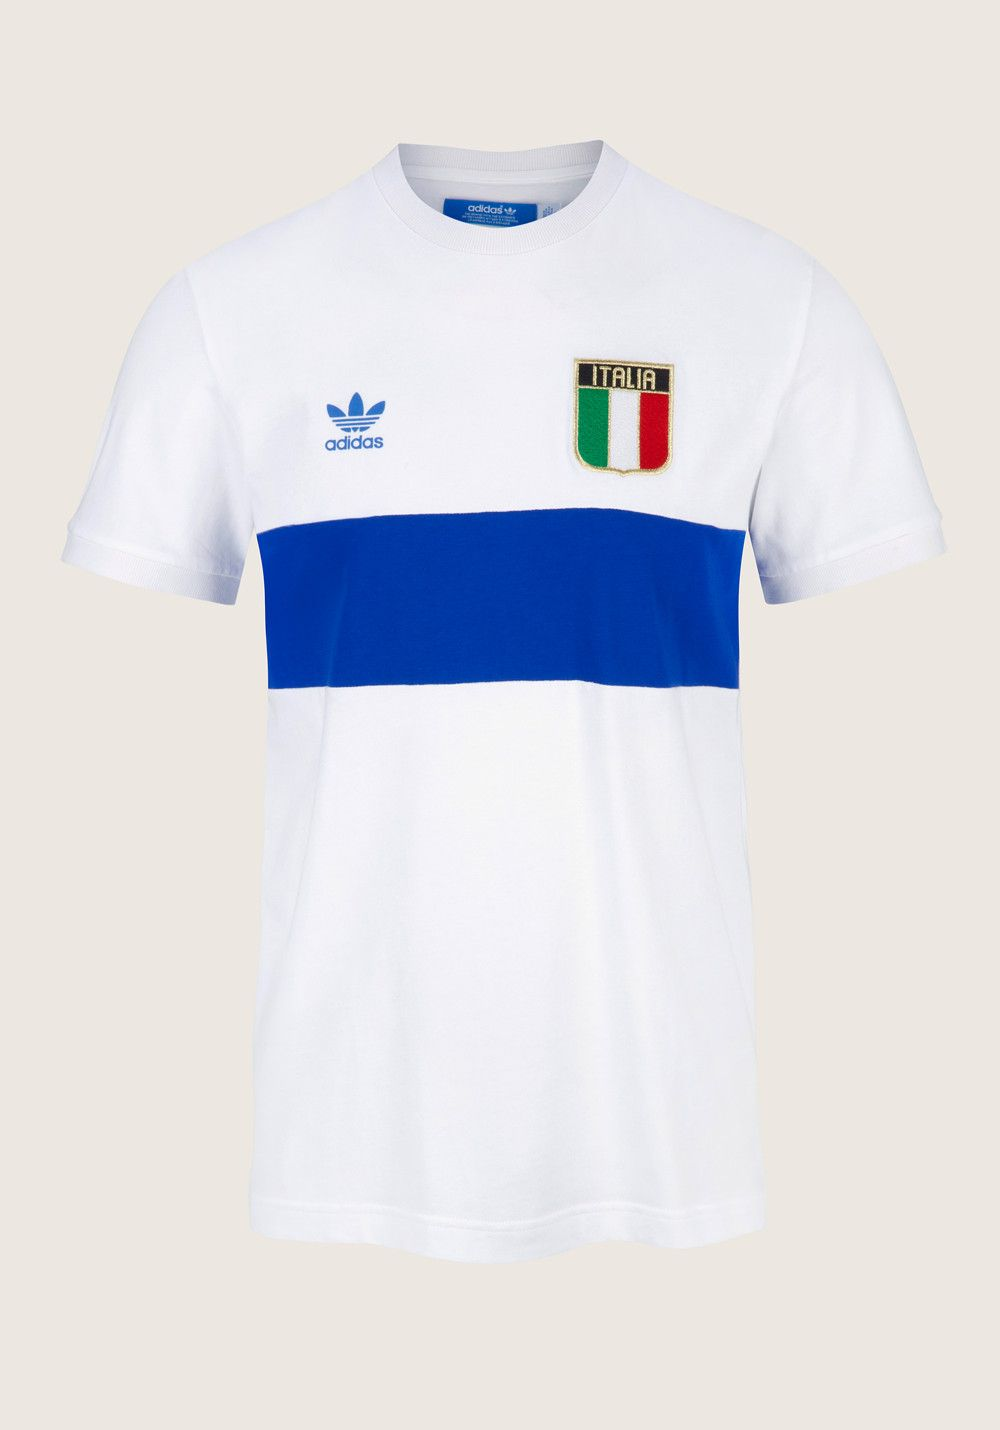 ADIDAS Country Tee Italy white blue, Printed T Shirts